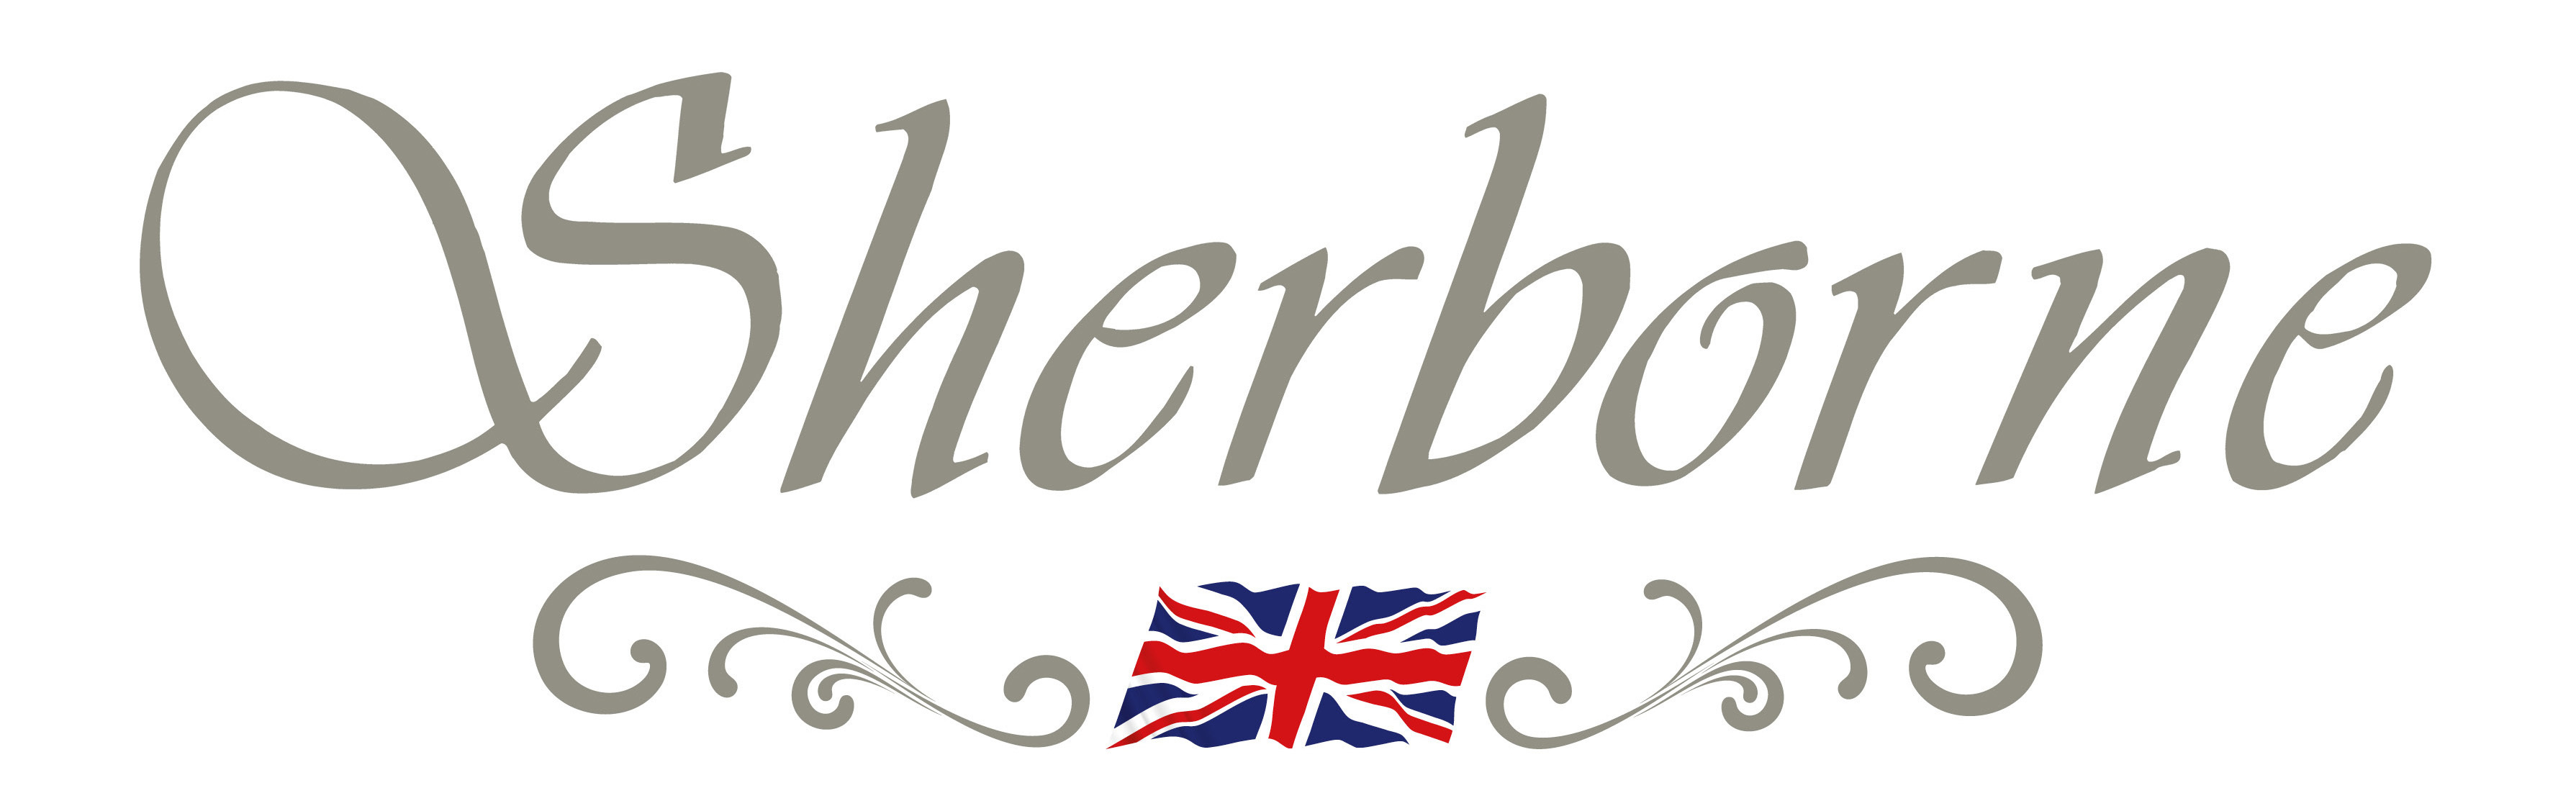 Best chairs logo - Sherborne Flag_logo_2015 Recliners_018